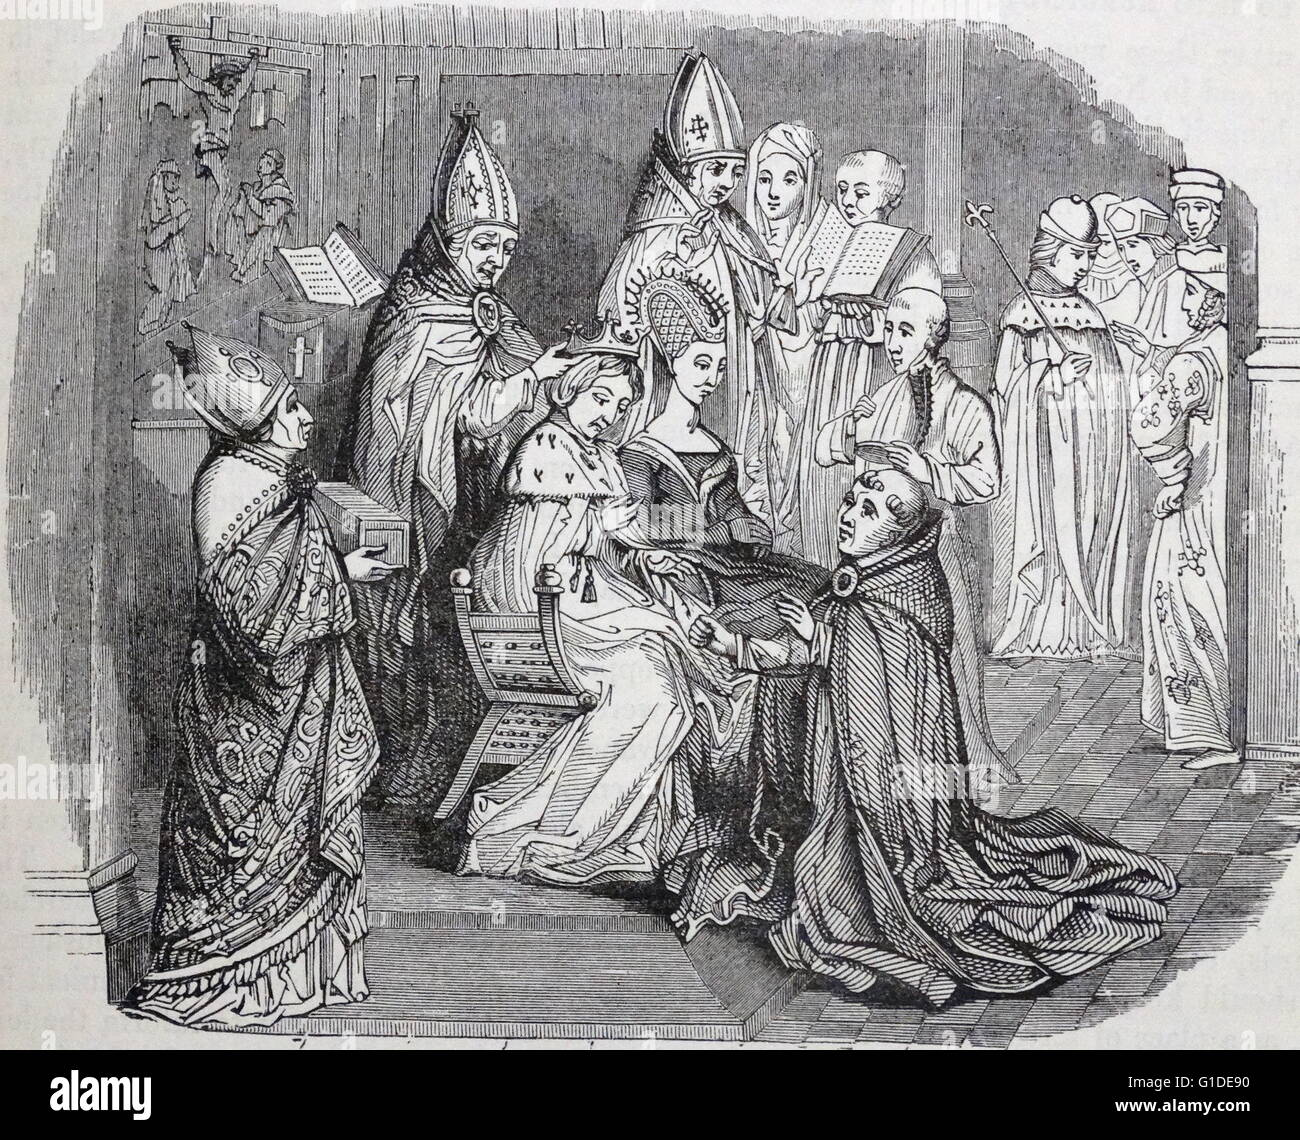 Engraving depicting the coronation of King Charles V, Holy Roman Emperor (1500-1558) and his Queen Isabella of Portugal - Stock Image